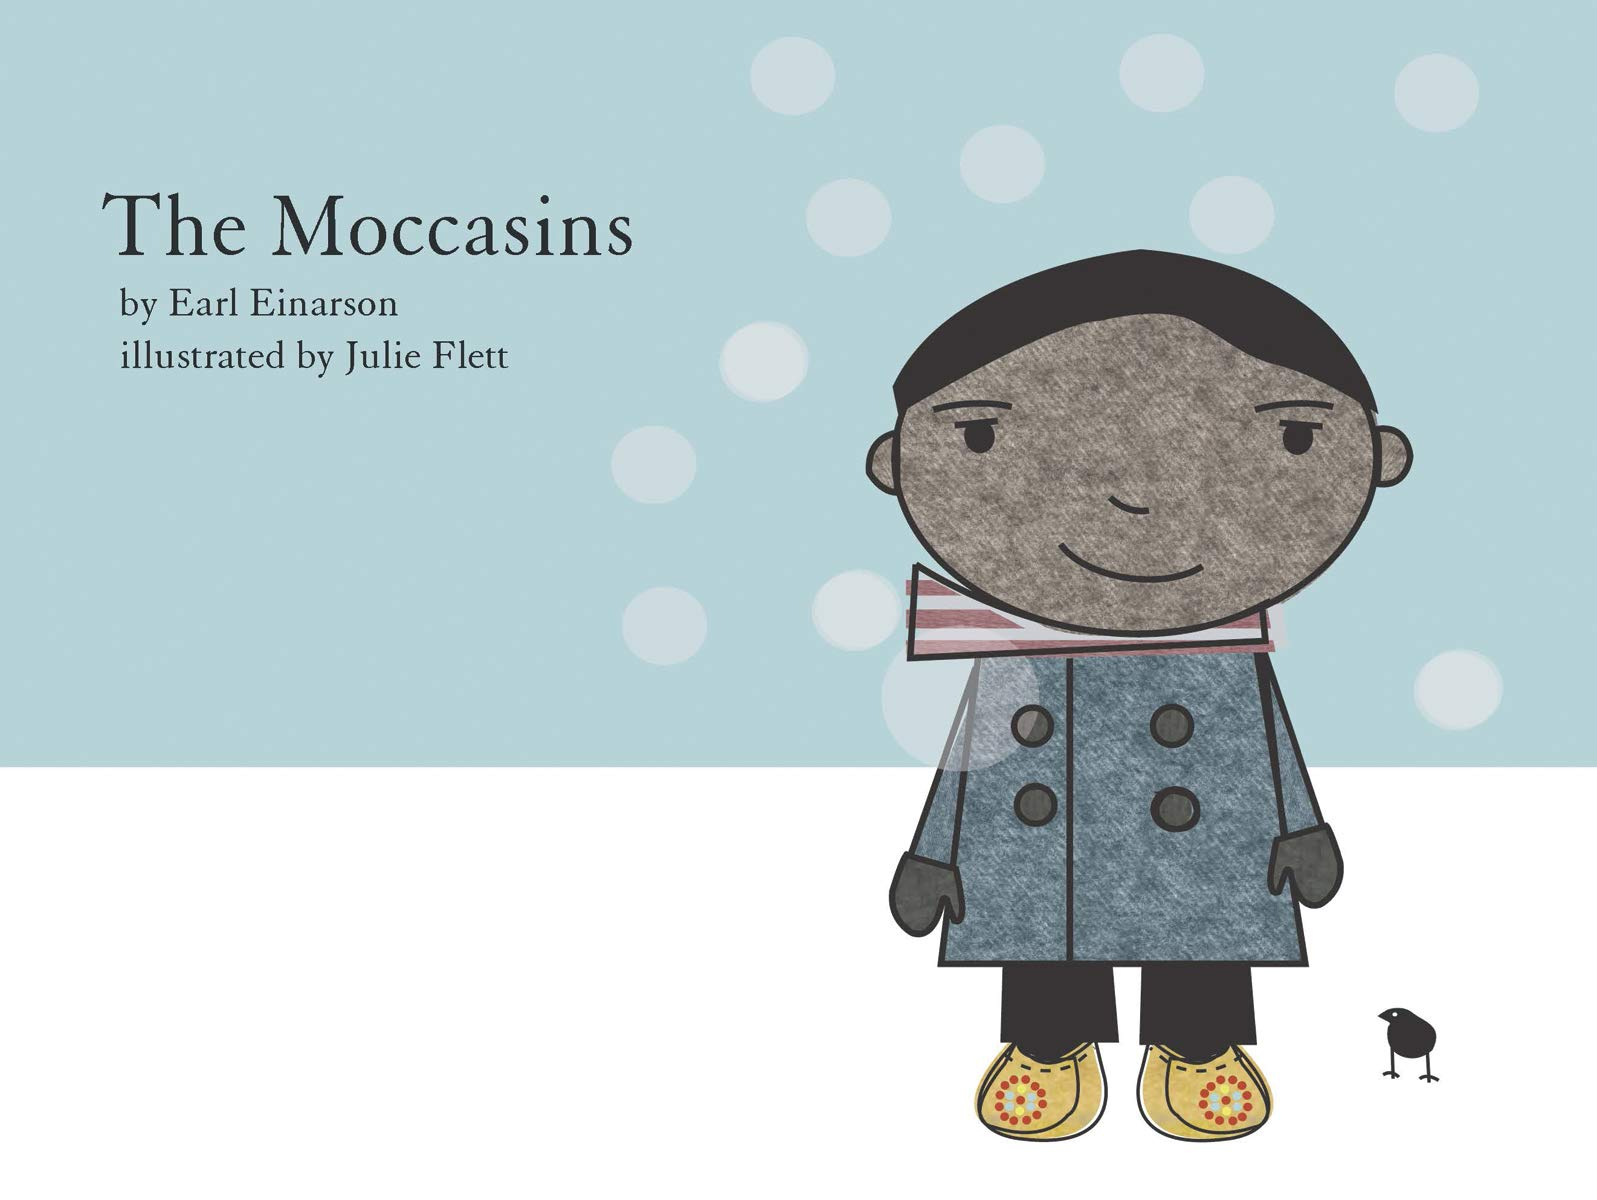 The Moccasins Paperback – May 1, 2004